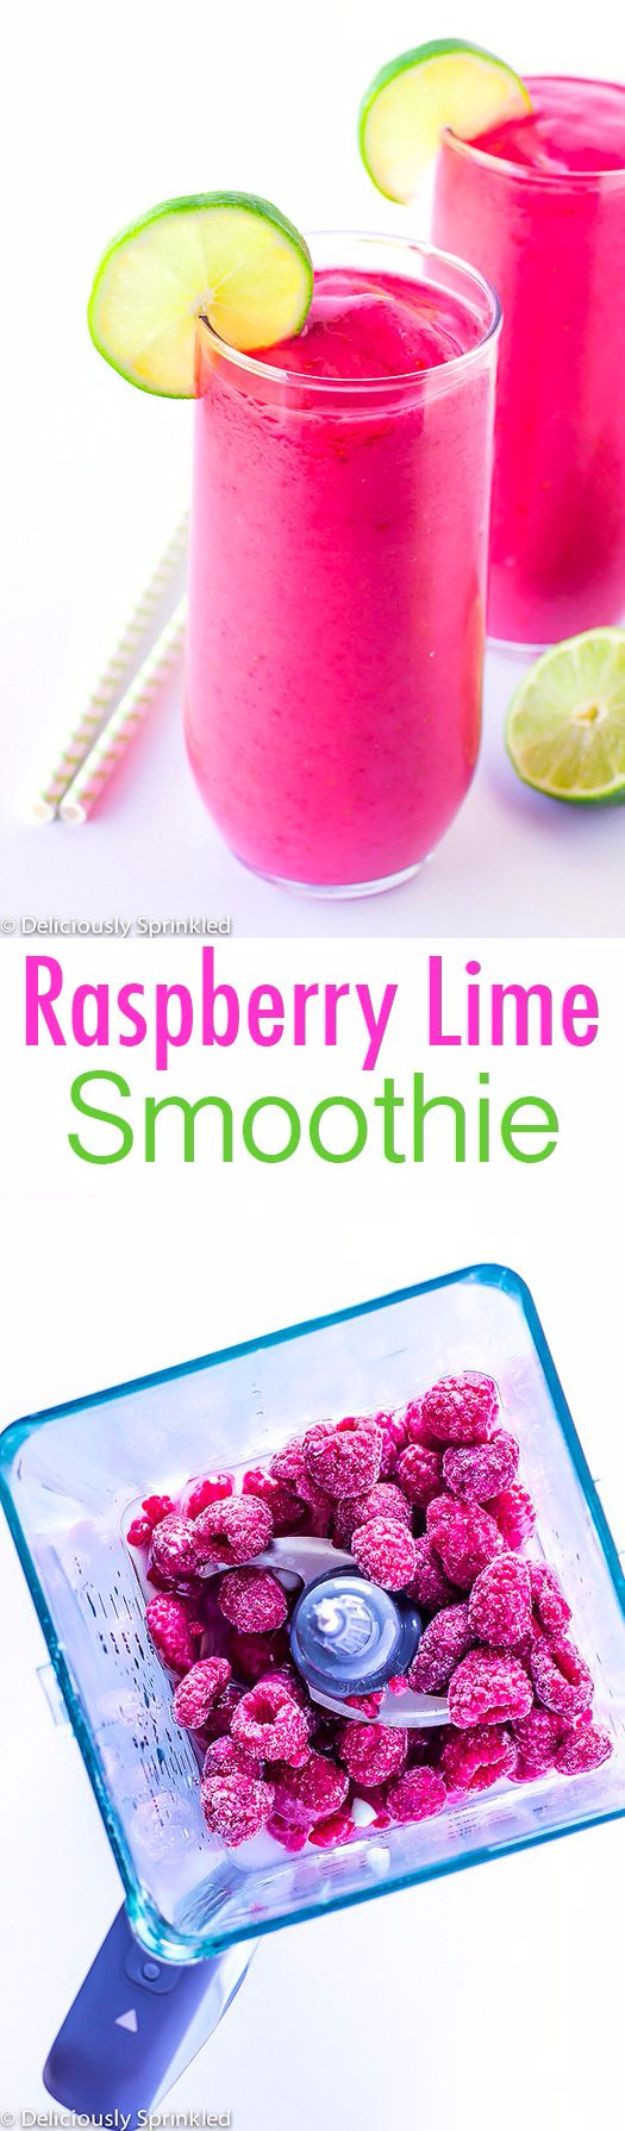 Healthy Smoothies For Weight Loss And Energy  Best 25 Morning energy smoothie ideas on Pinterest